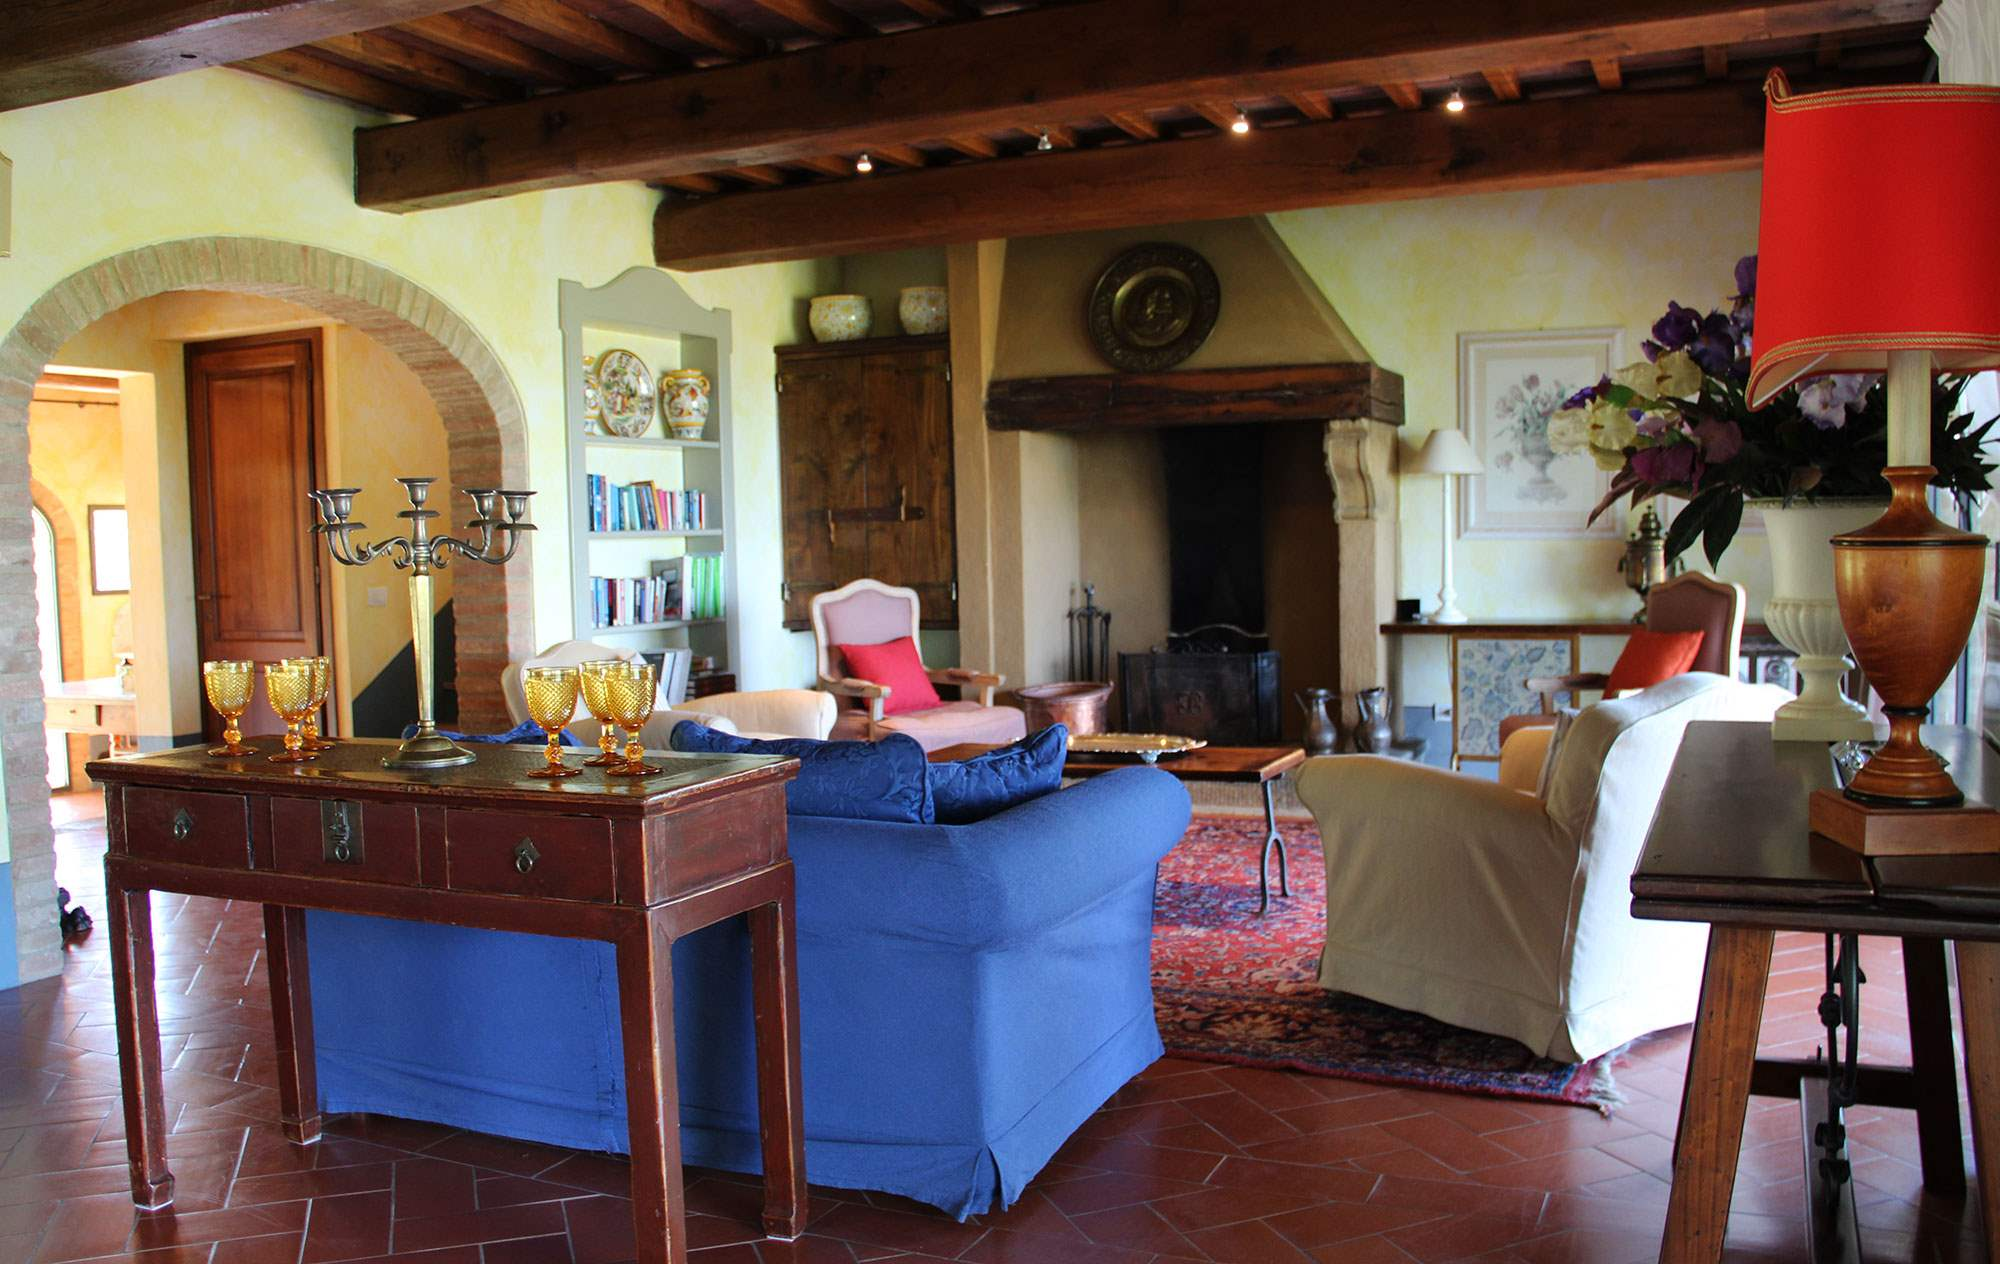 Villa Capanna, 3 bedroom villa in Chianti & Countryside, Tuscany Photo #4